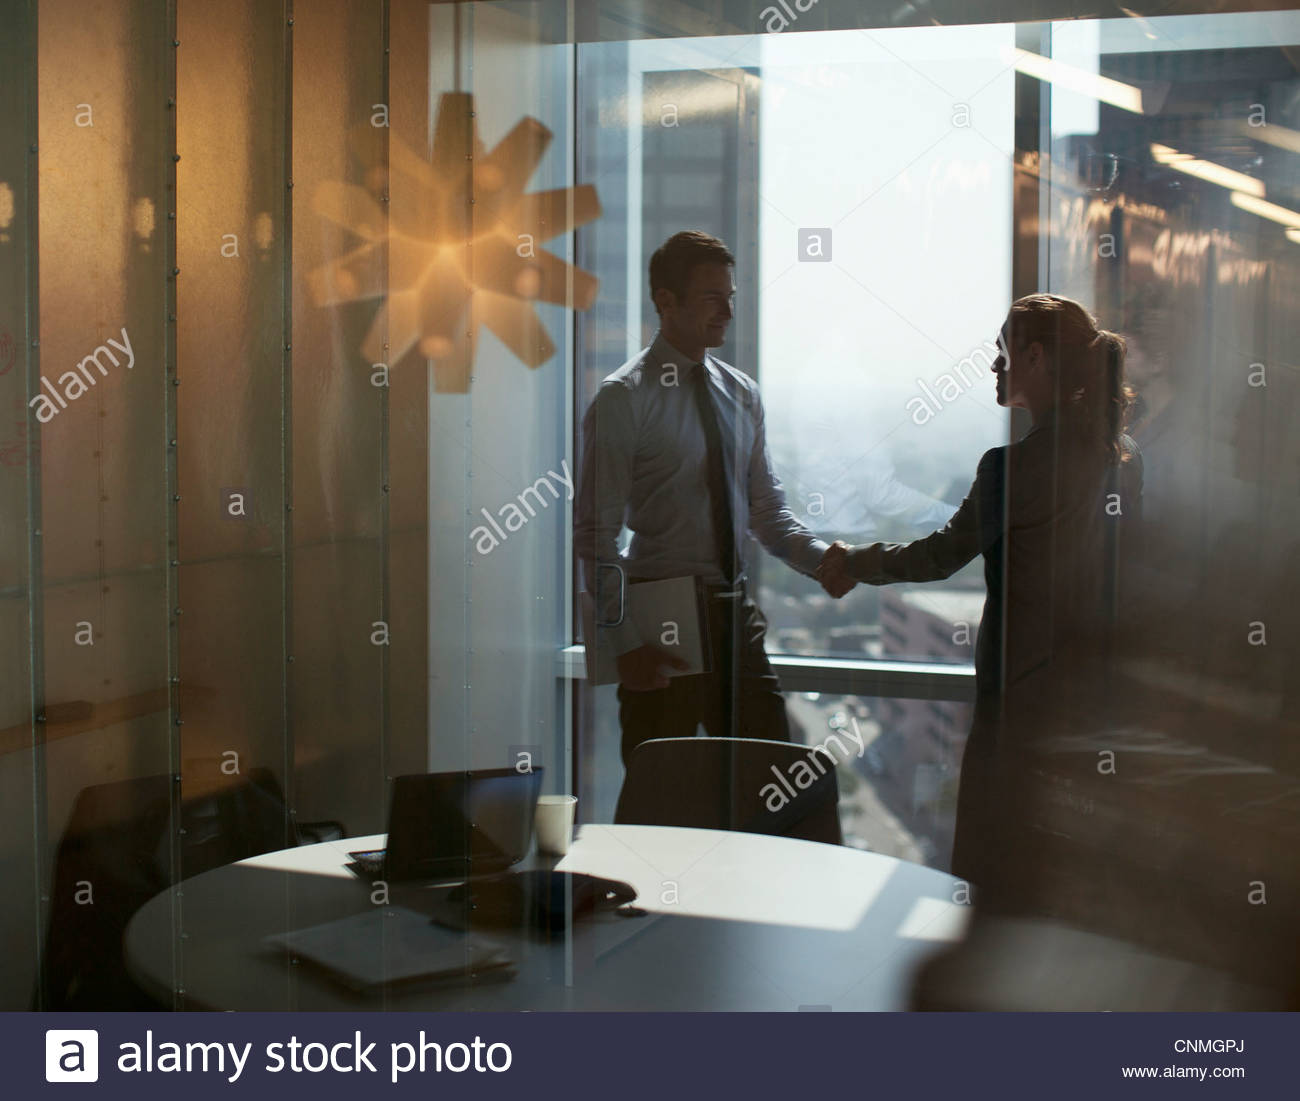 Business people shaking hands in office Photo Stock